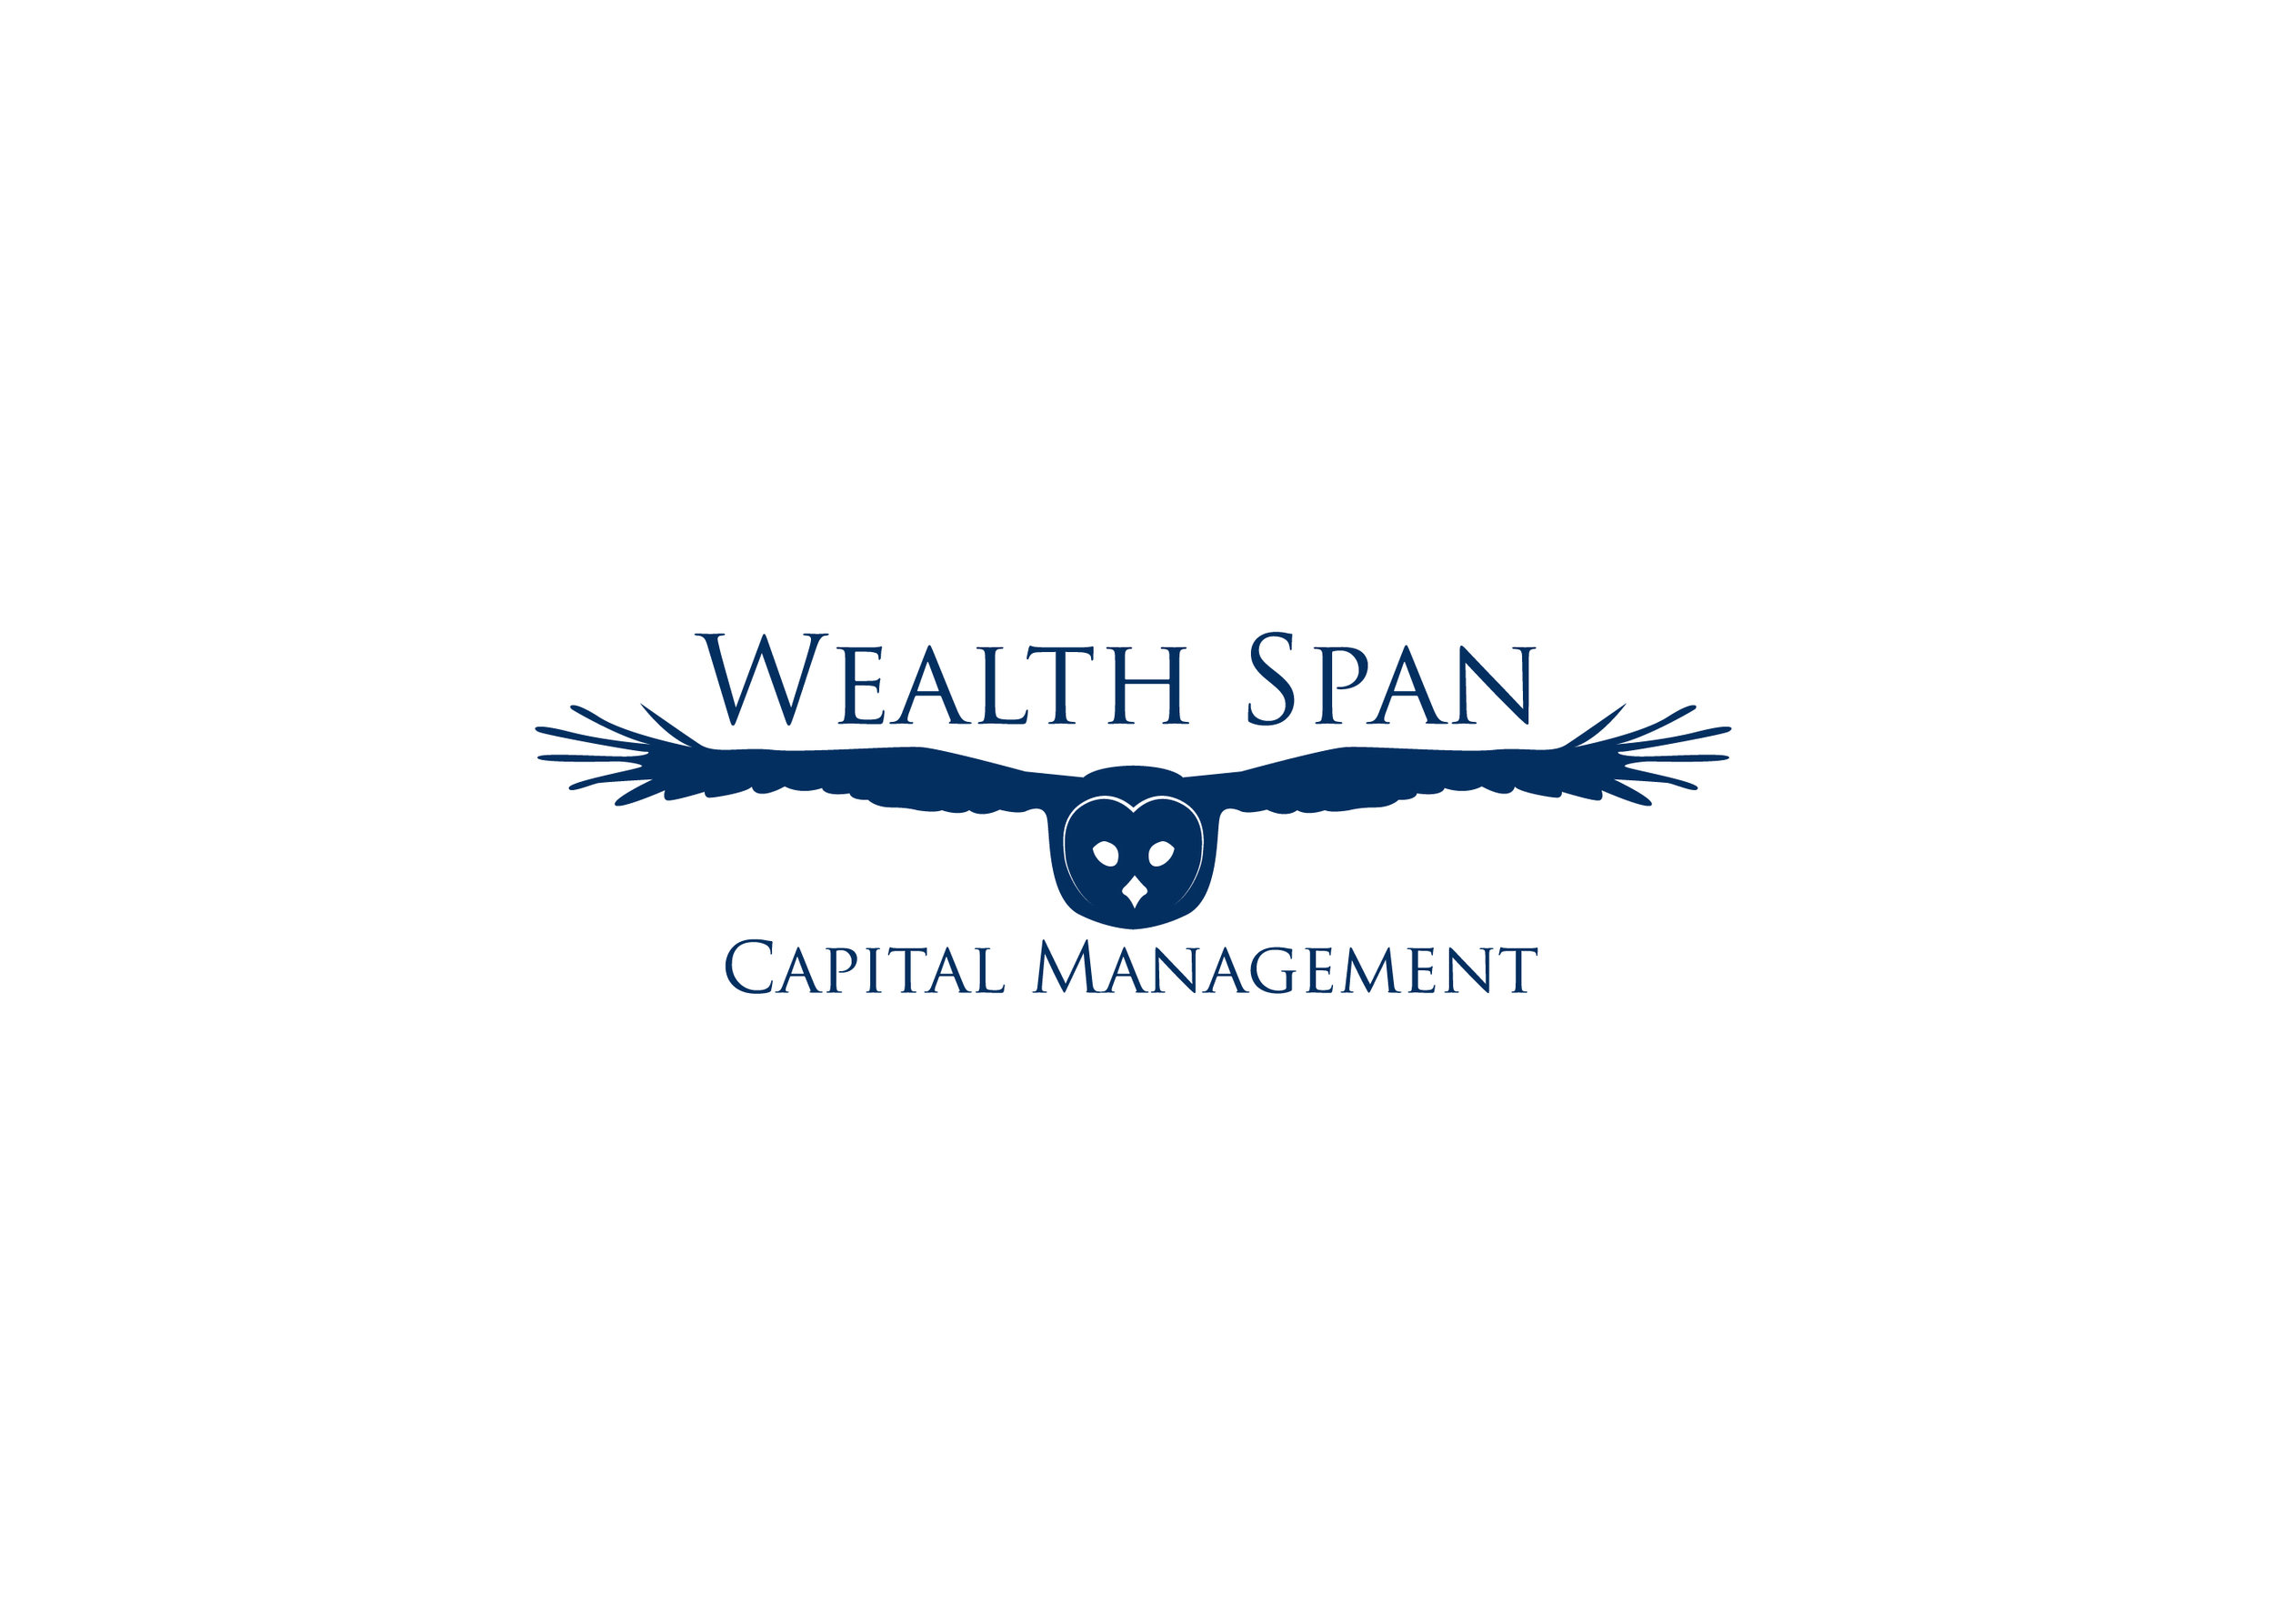 Contact Wealth Span:  tristan@wealthspancapital.com